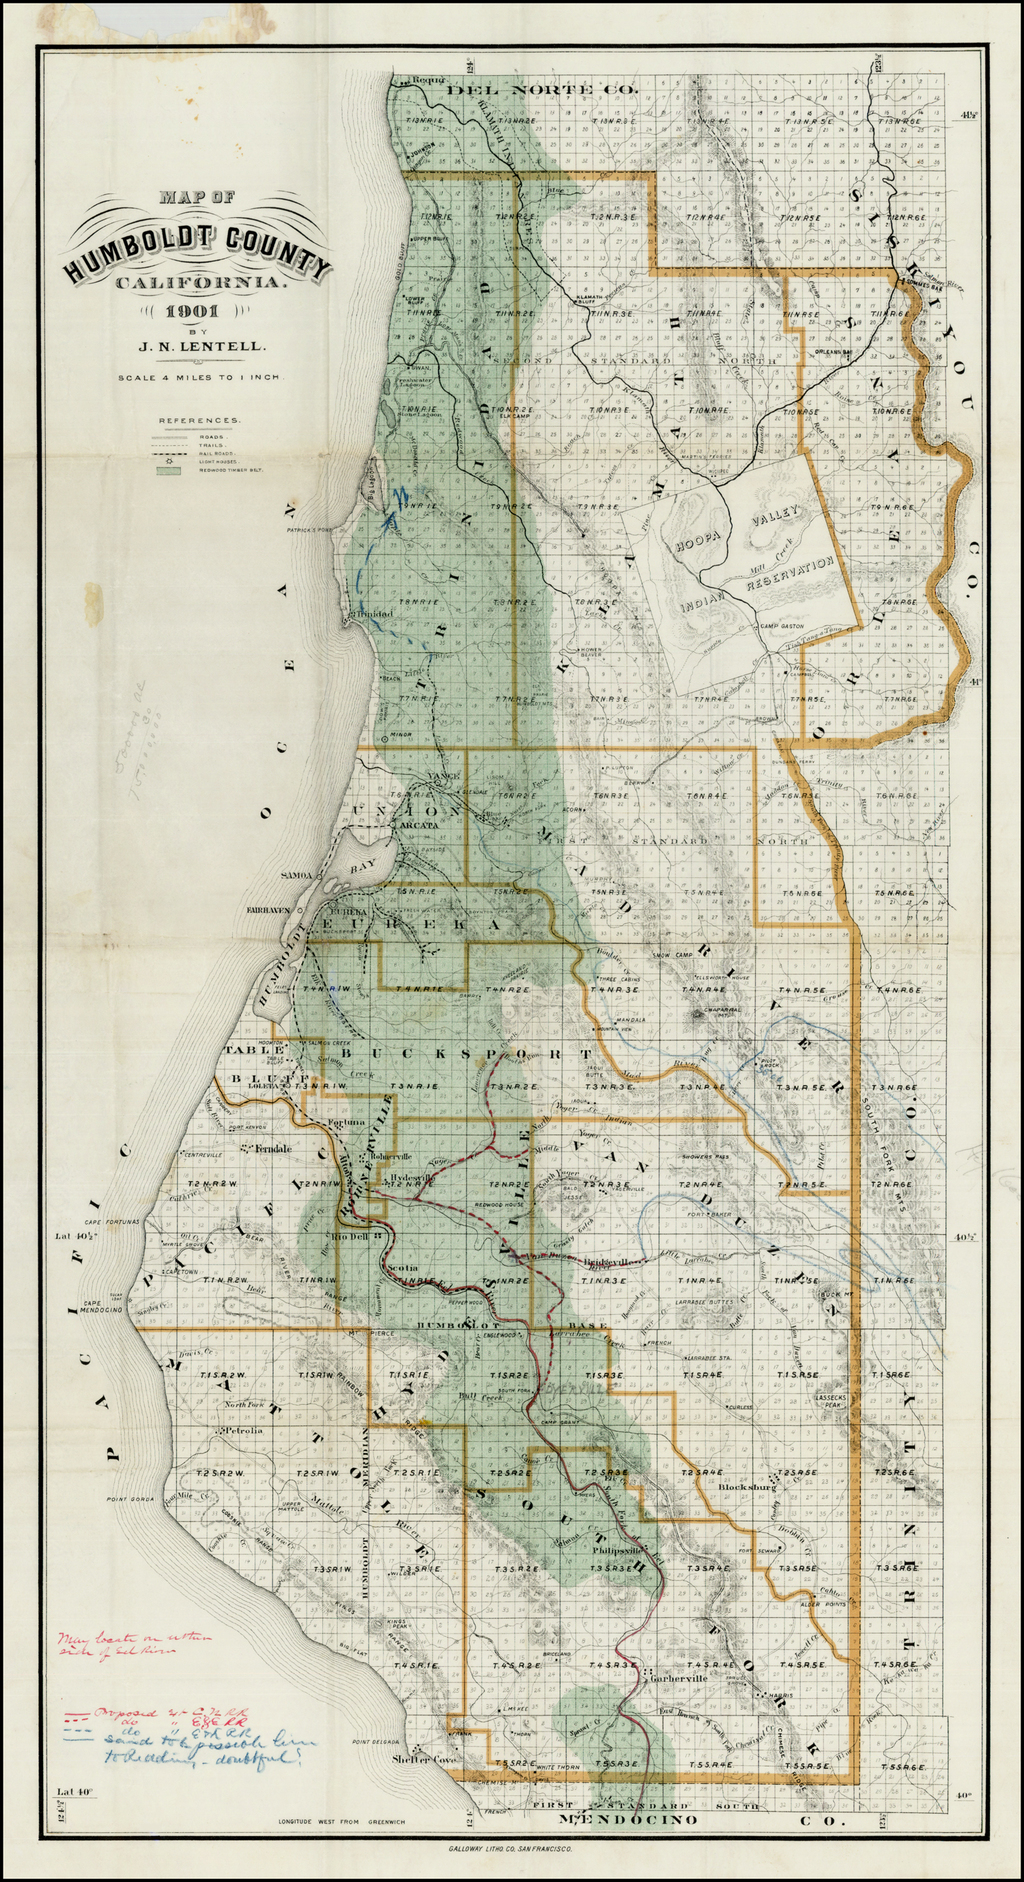 Map Of Humboldt County California 1901 By J N Lentell Barry